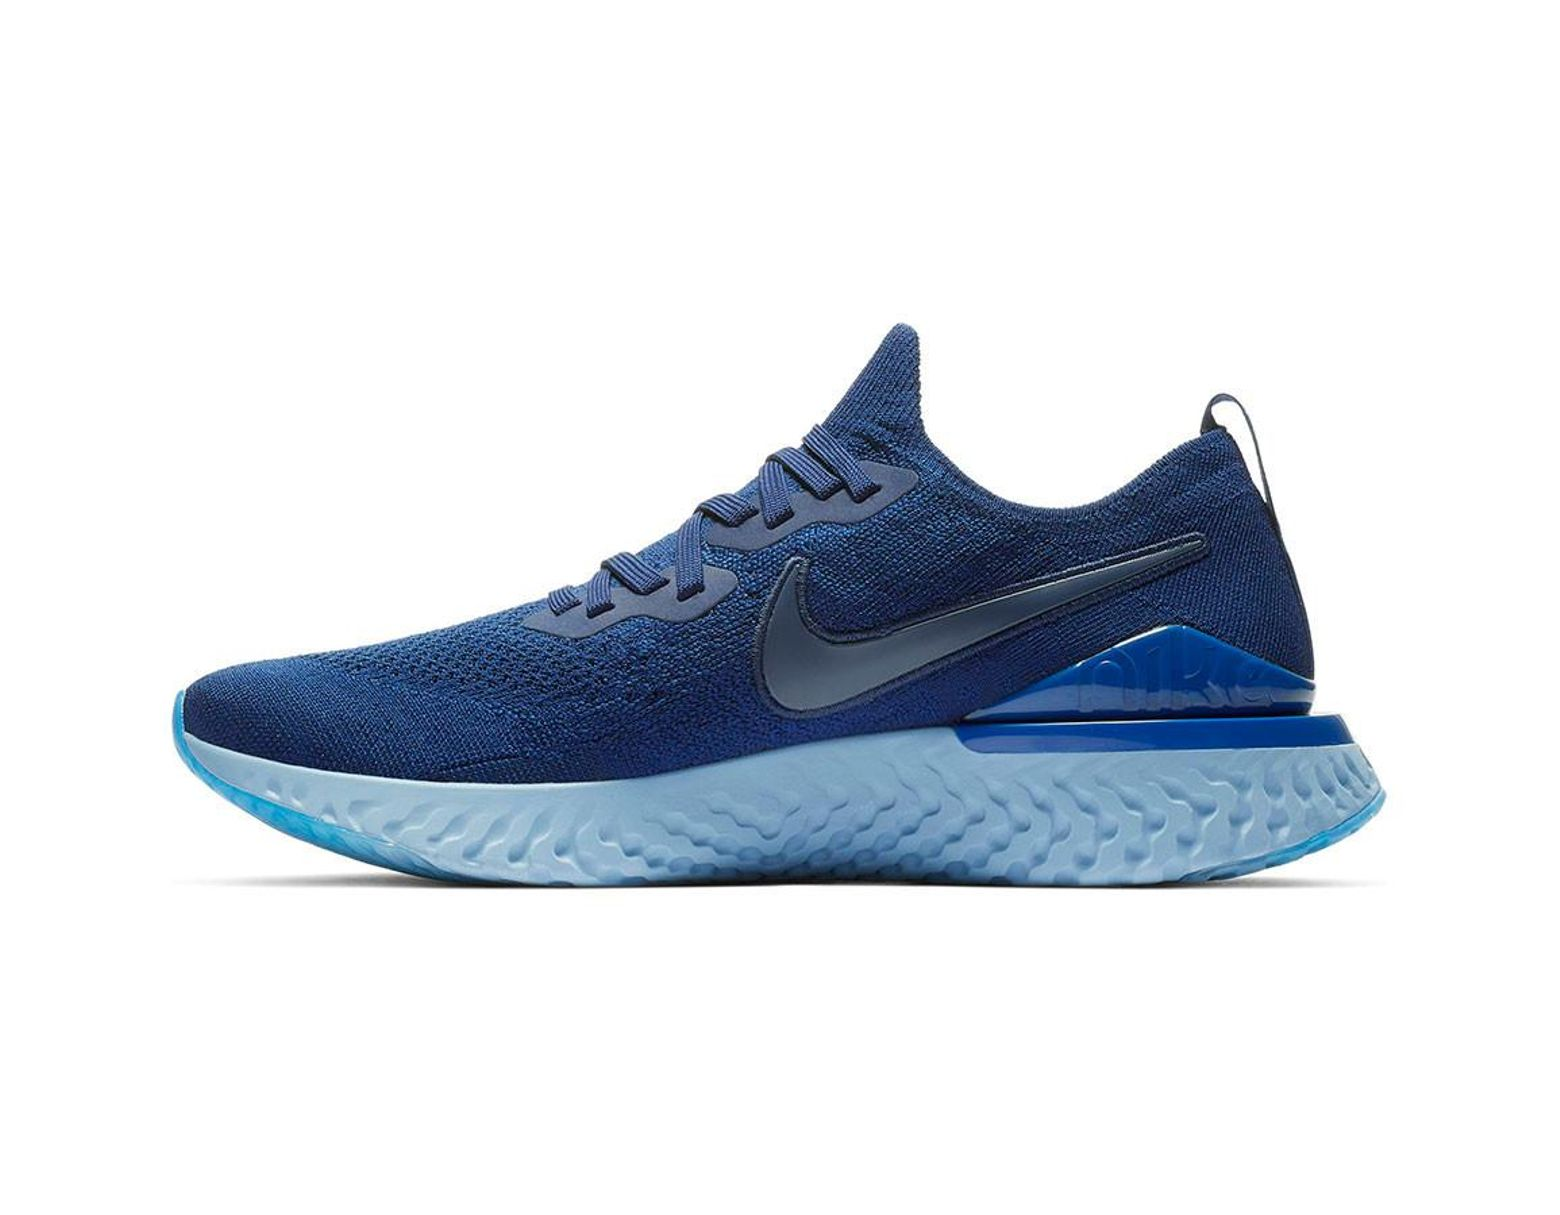 03f1068afedce Lyst - Nike Epic React Flyknit 2 Running Shoe in Blue for Men - Save 13%